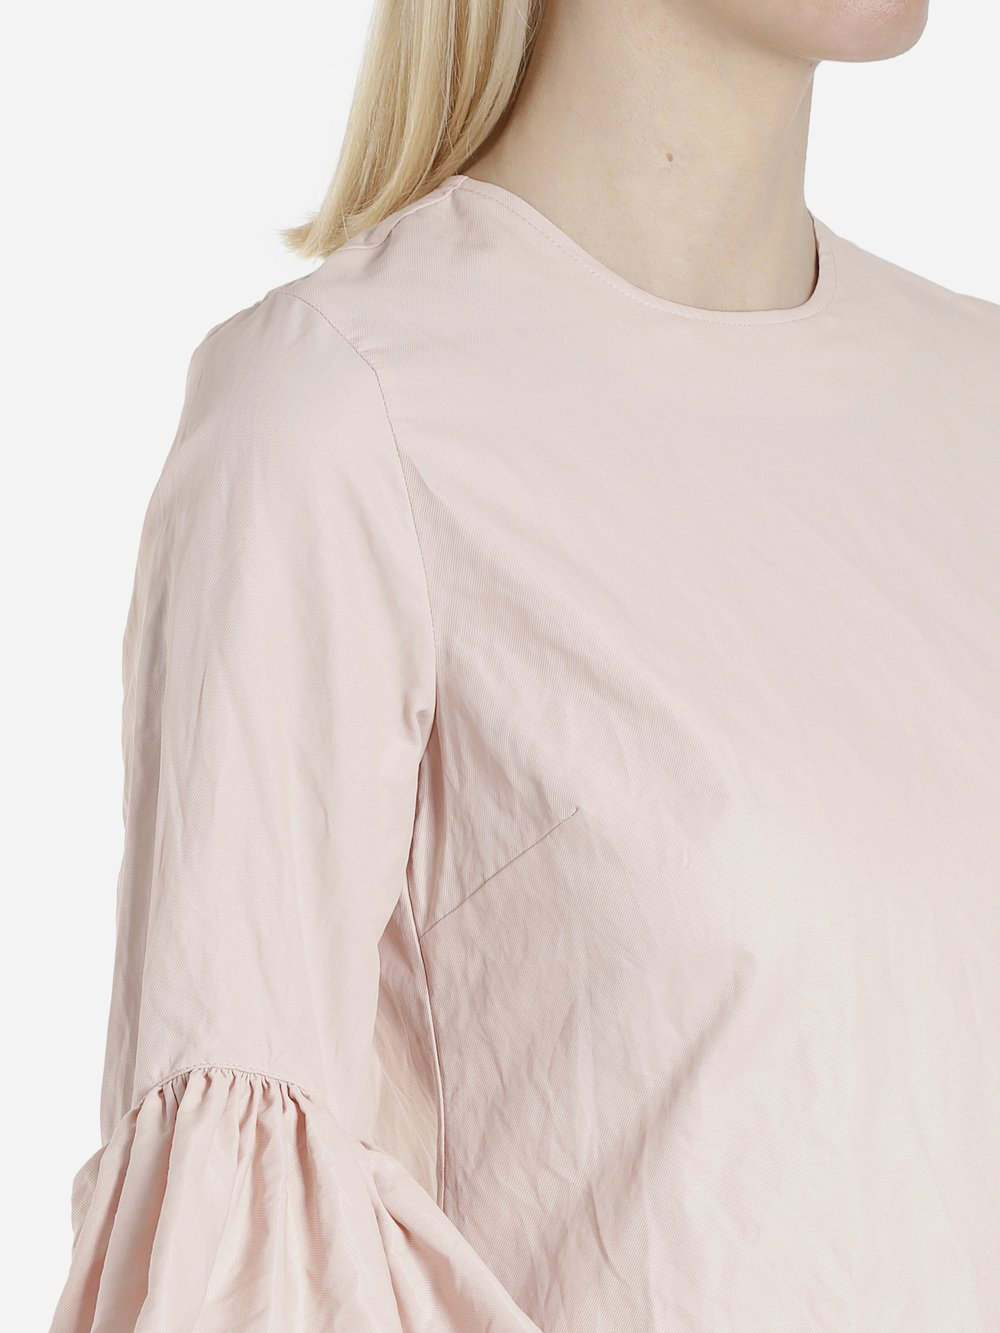 Ss18dr0042tft pale pink 18 01 17 5522